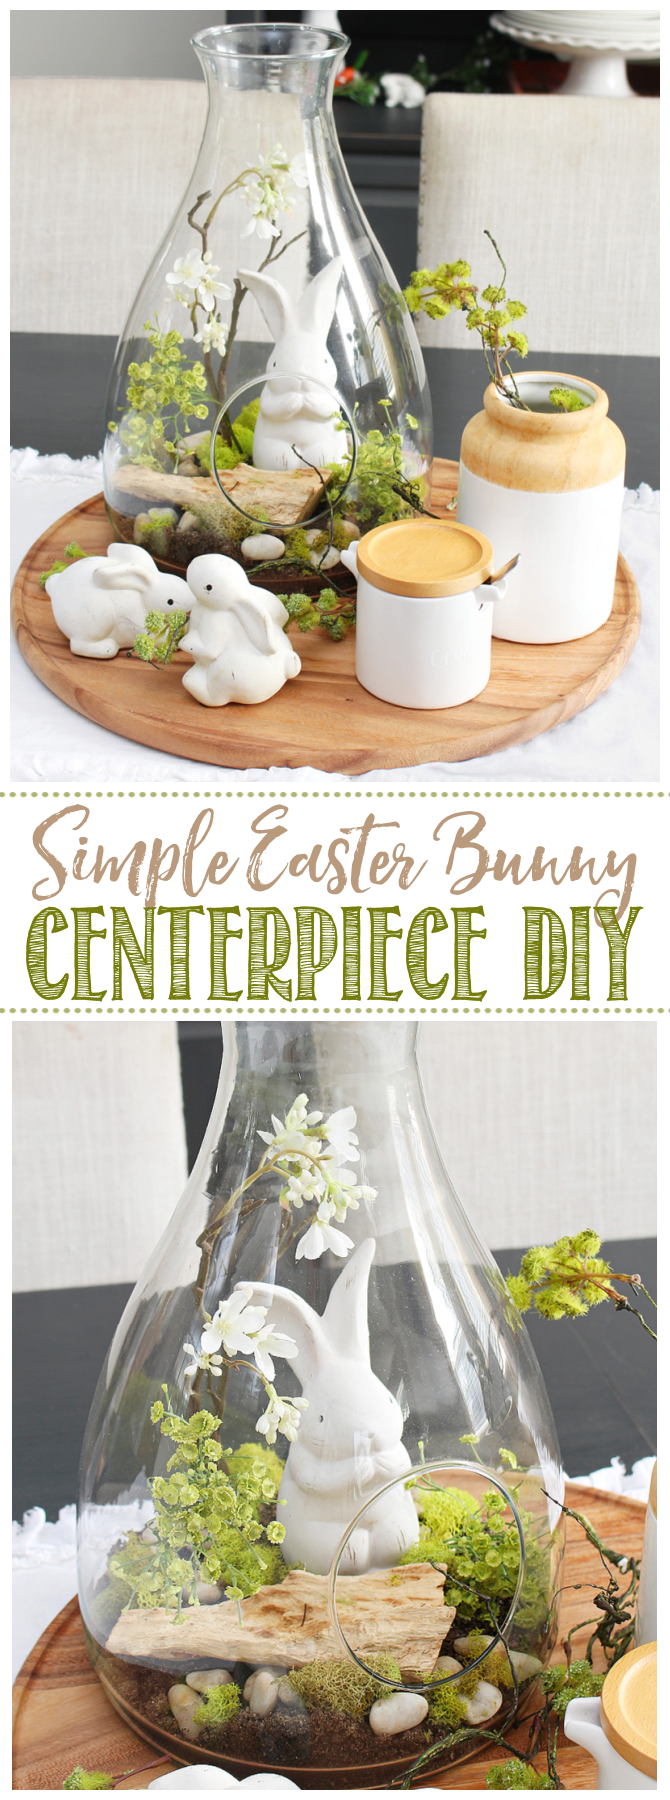 Cute Easter bunny Easter centerpiece DIY on wood tray.